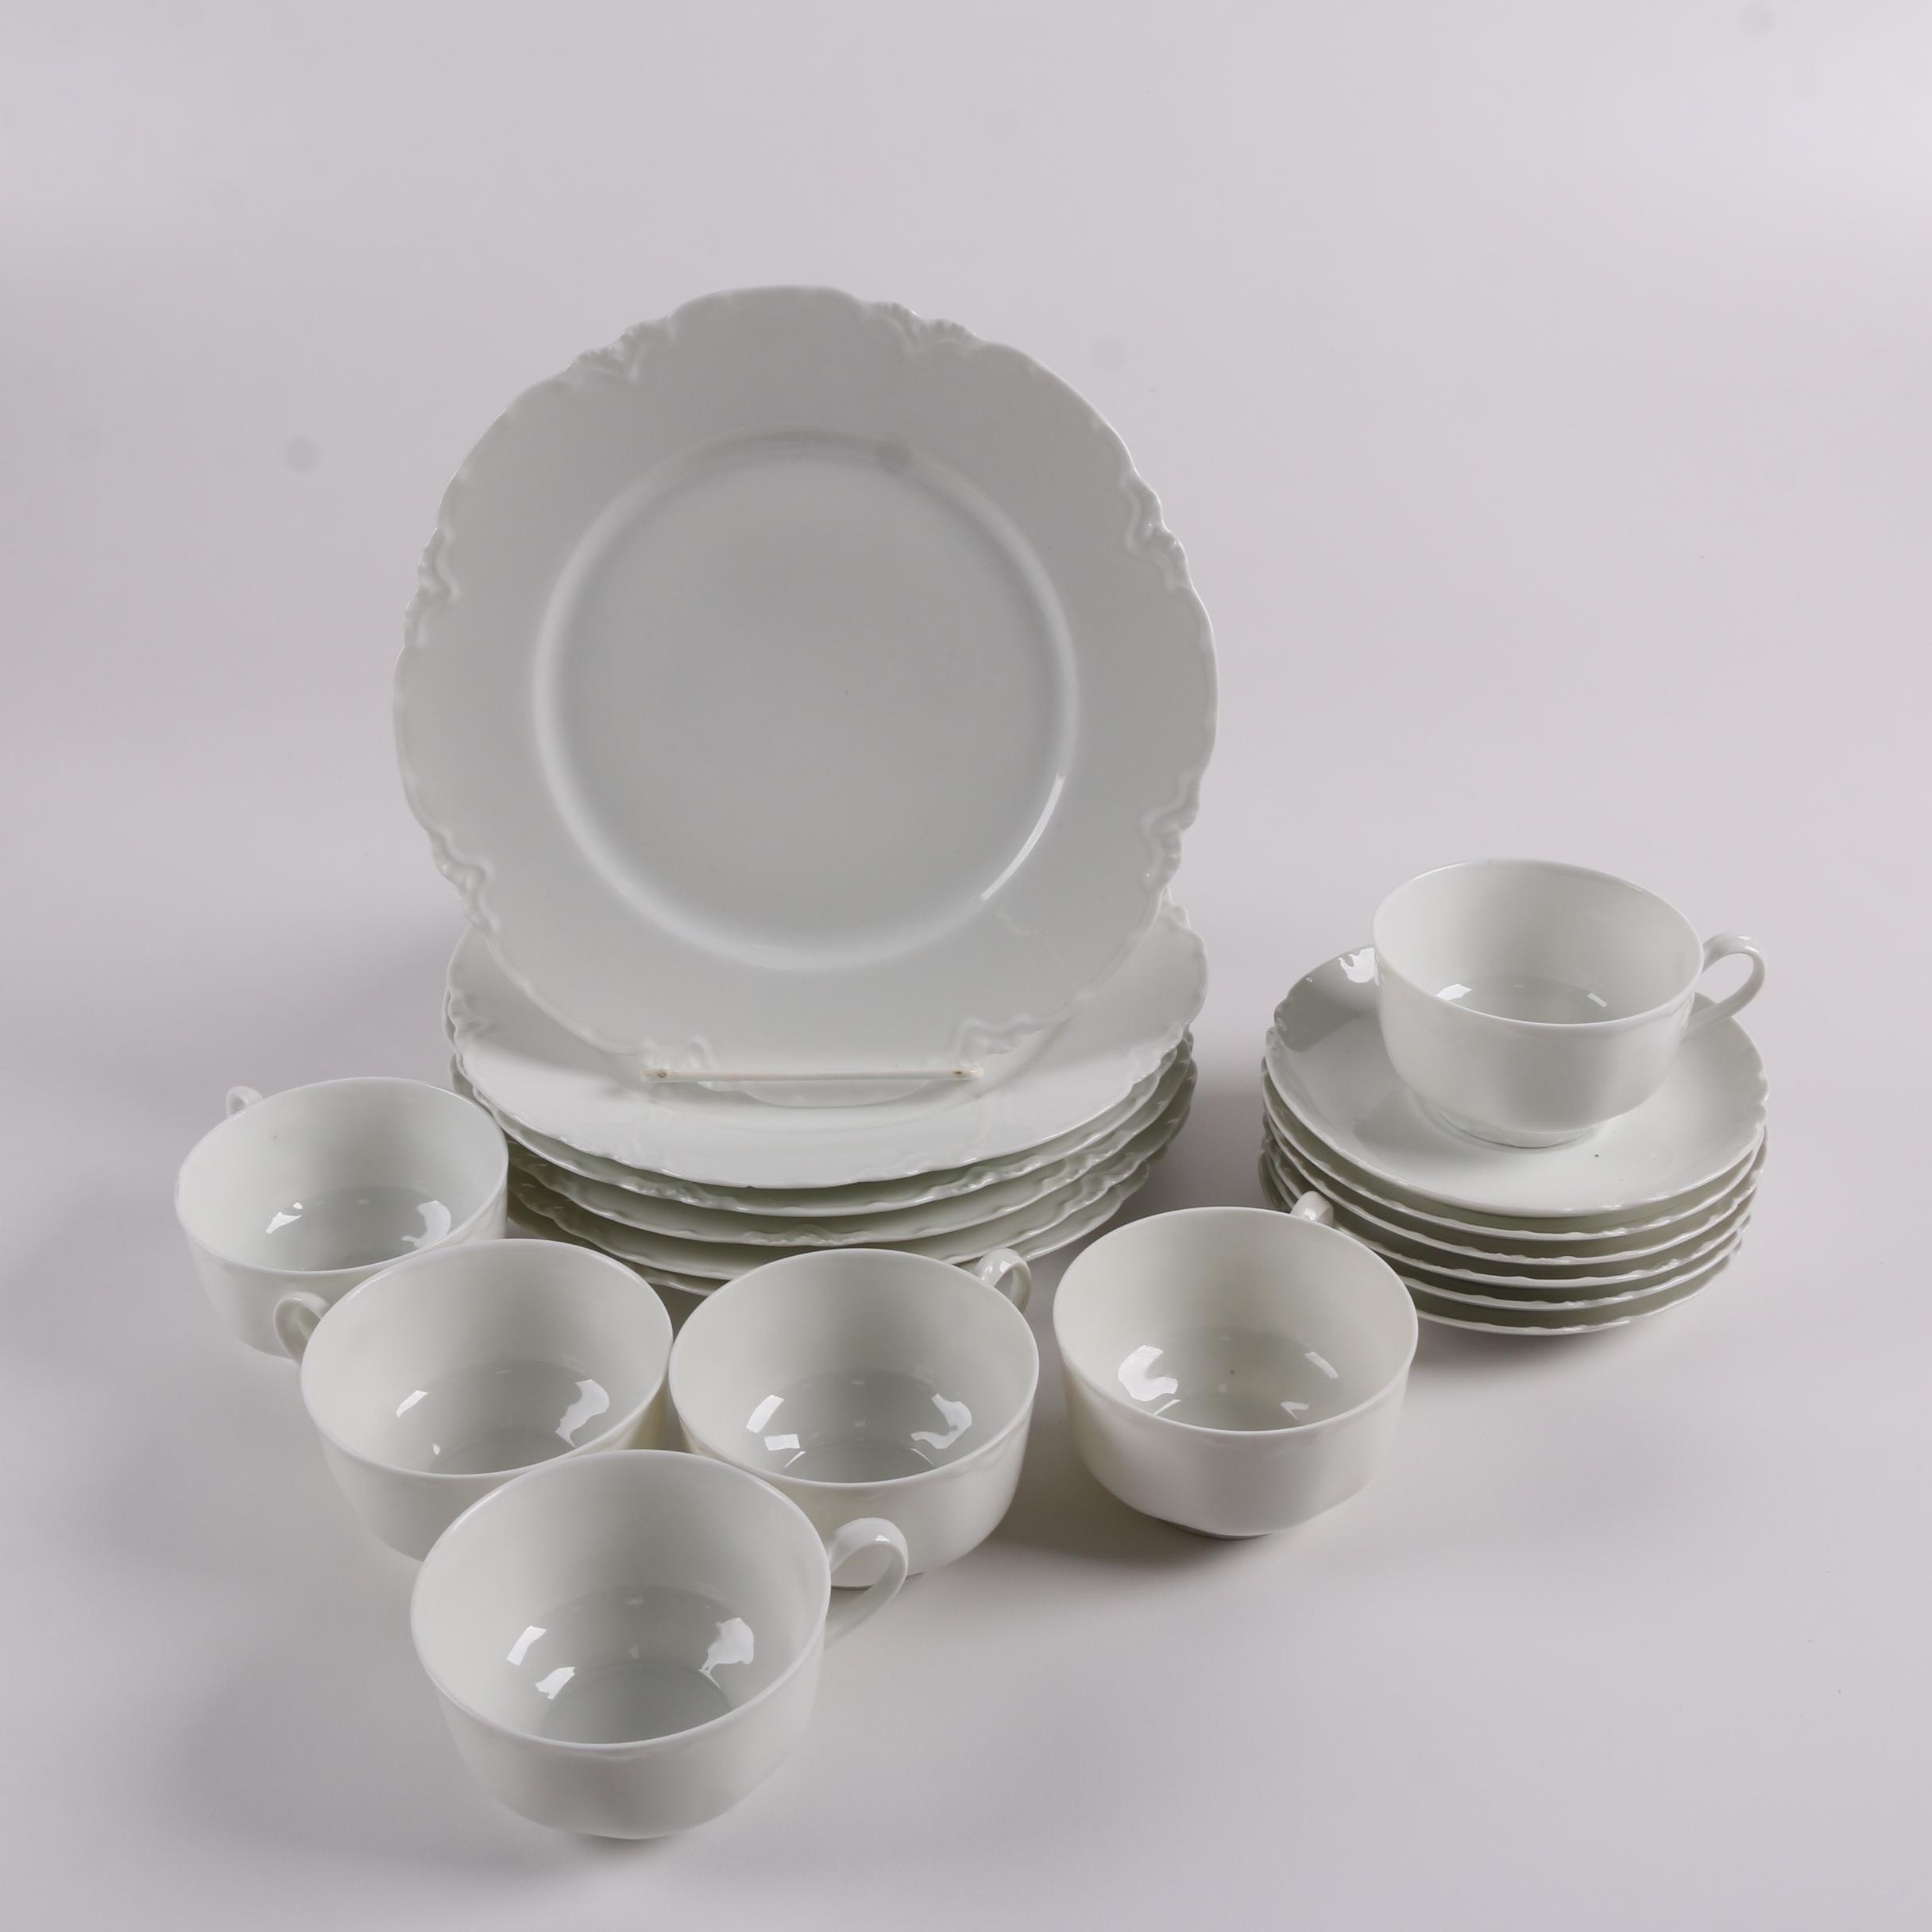 Vintage Haviland Whiteware Porcelain Salad Plates, Cups, and Saucers